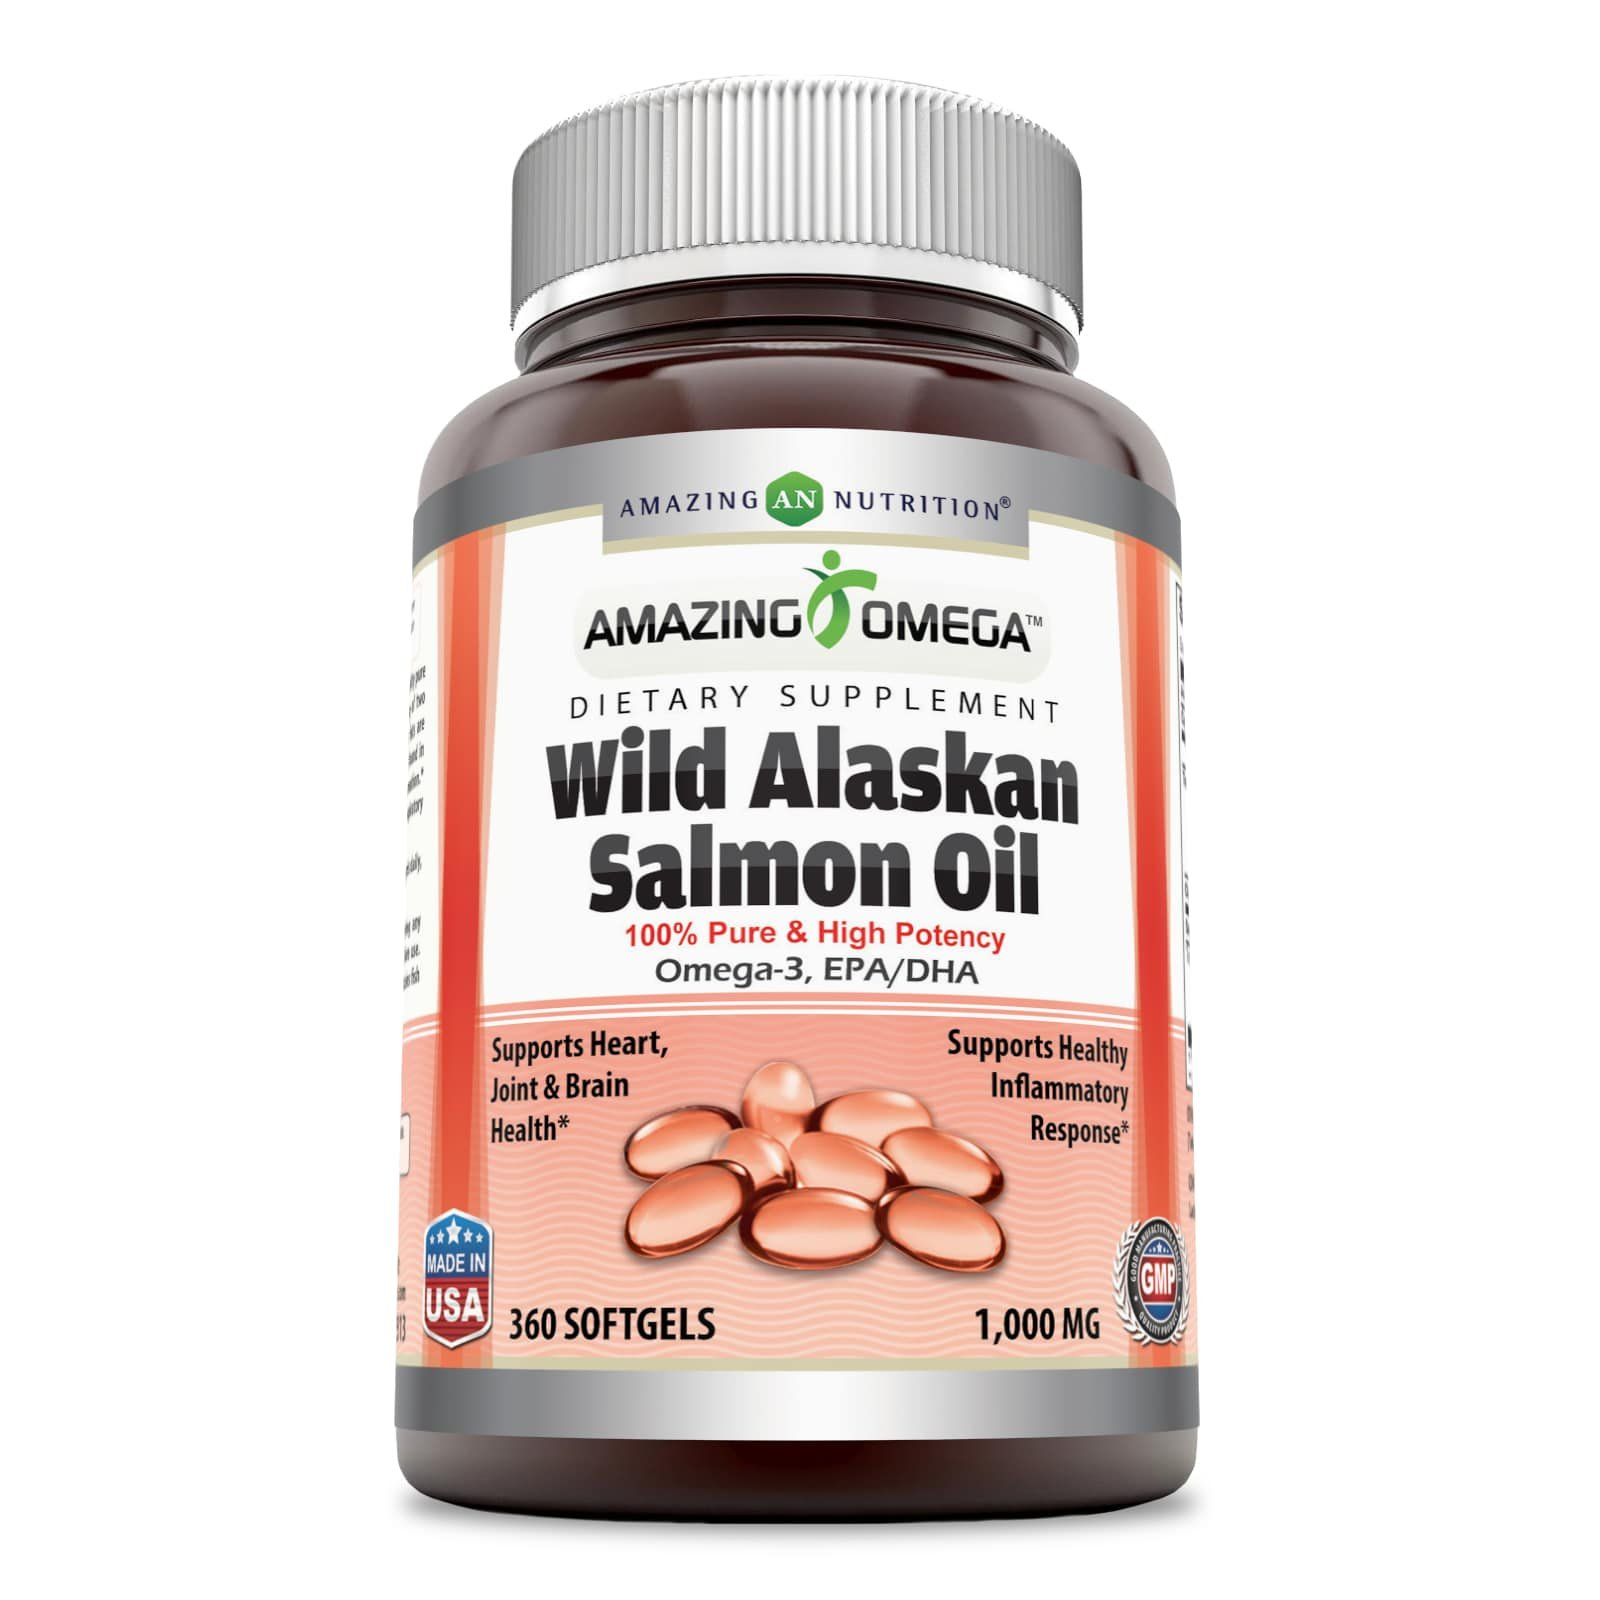 Amazing Omega Wild Alaskan Salmon Oil - 2000mg of Salmon Oil Per Serving, Softgels - Supports Heart, Joint & Brain Health and Promotes Healthy inflammatory Response (360 Softgels)